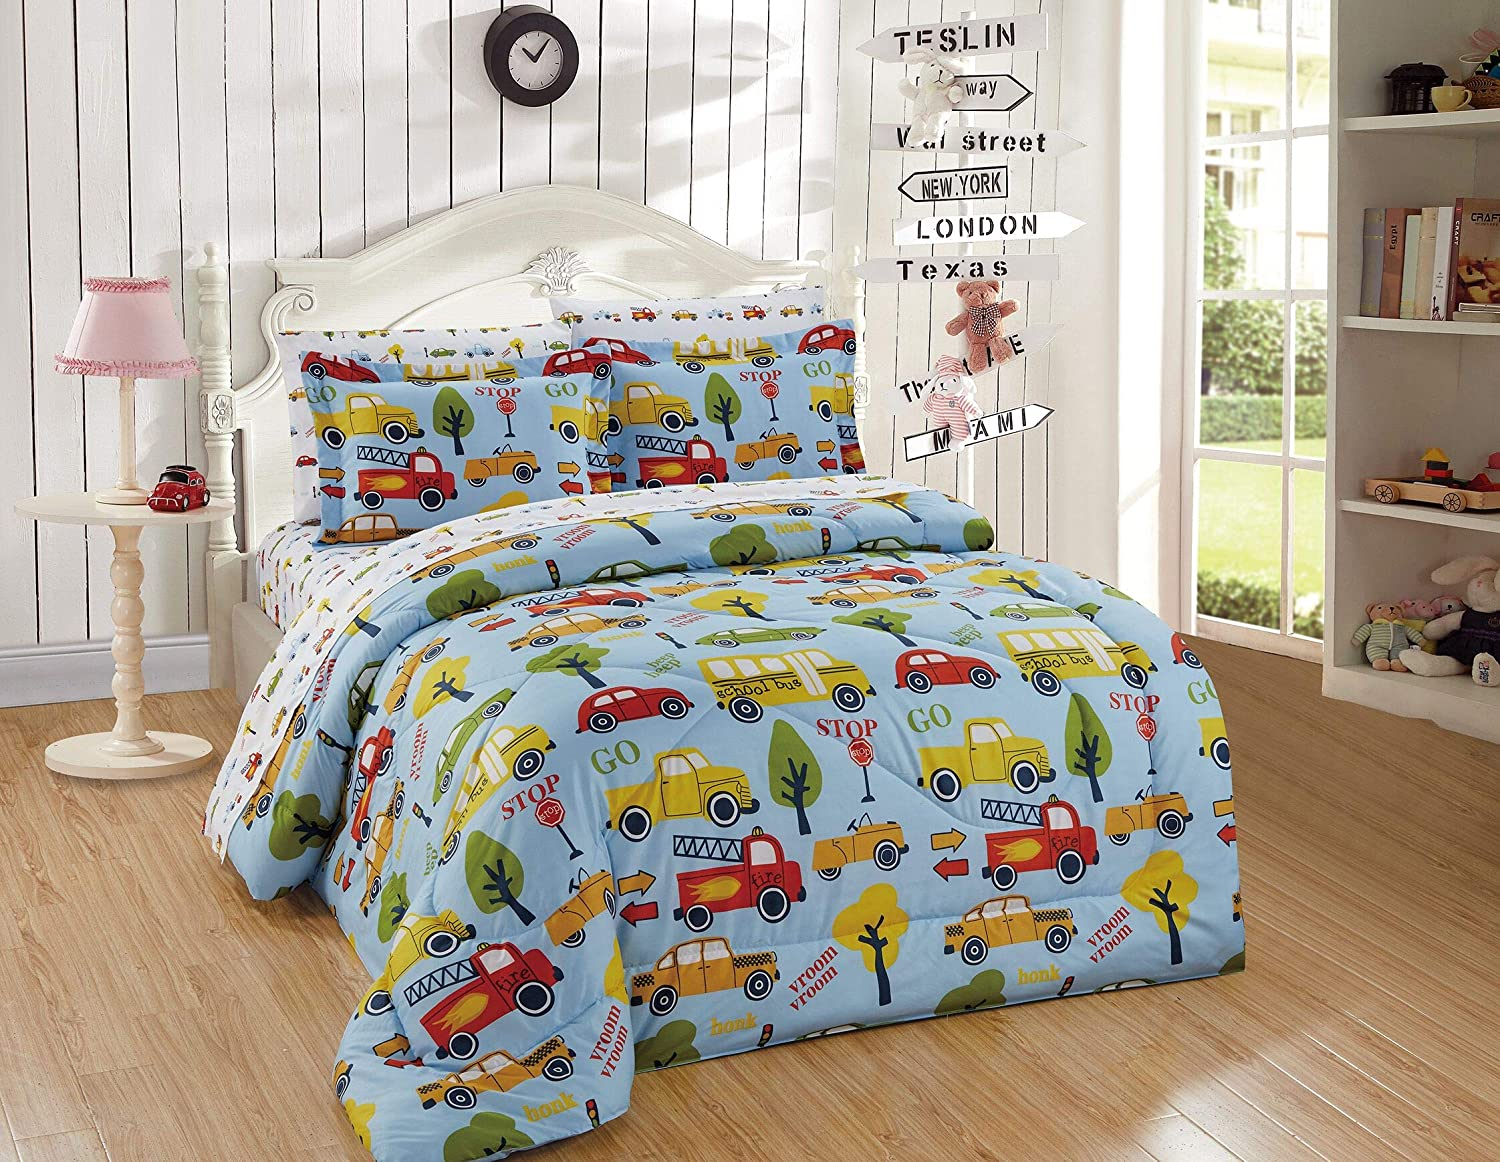 Elegant Home Multicolor Heroes First Responders Police Cars Fire Trucks Ambulances Design 5 Piece Comforter Bedding Set for Boys//Kids Bed in a Bag with Sheet Set # Heroes 2 Twin Size